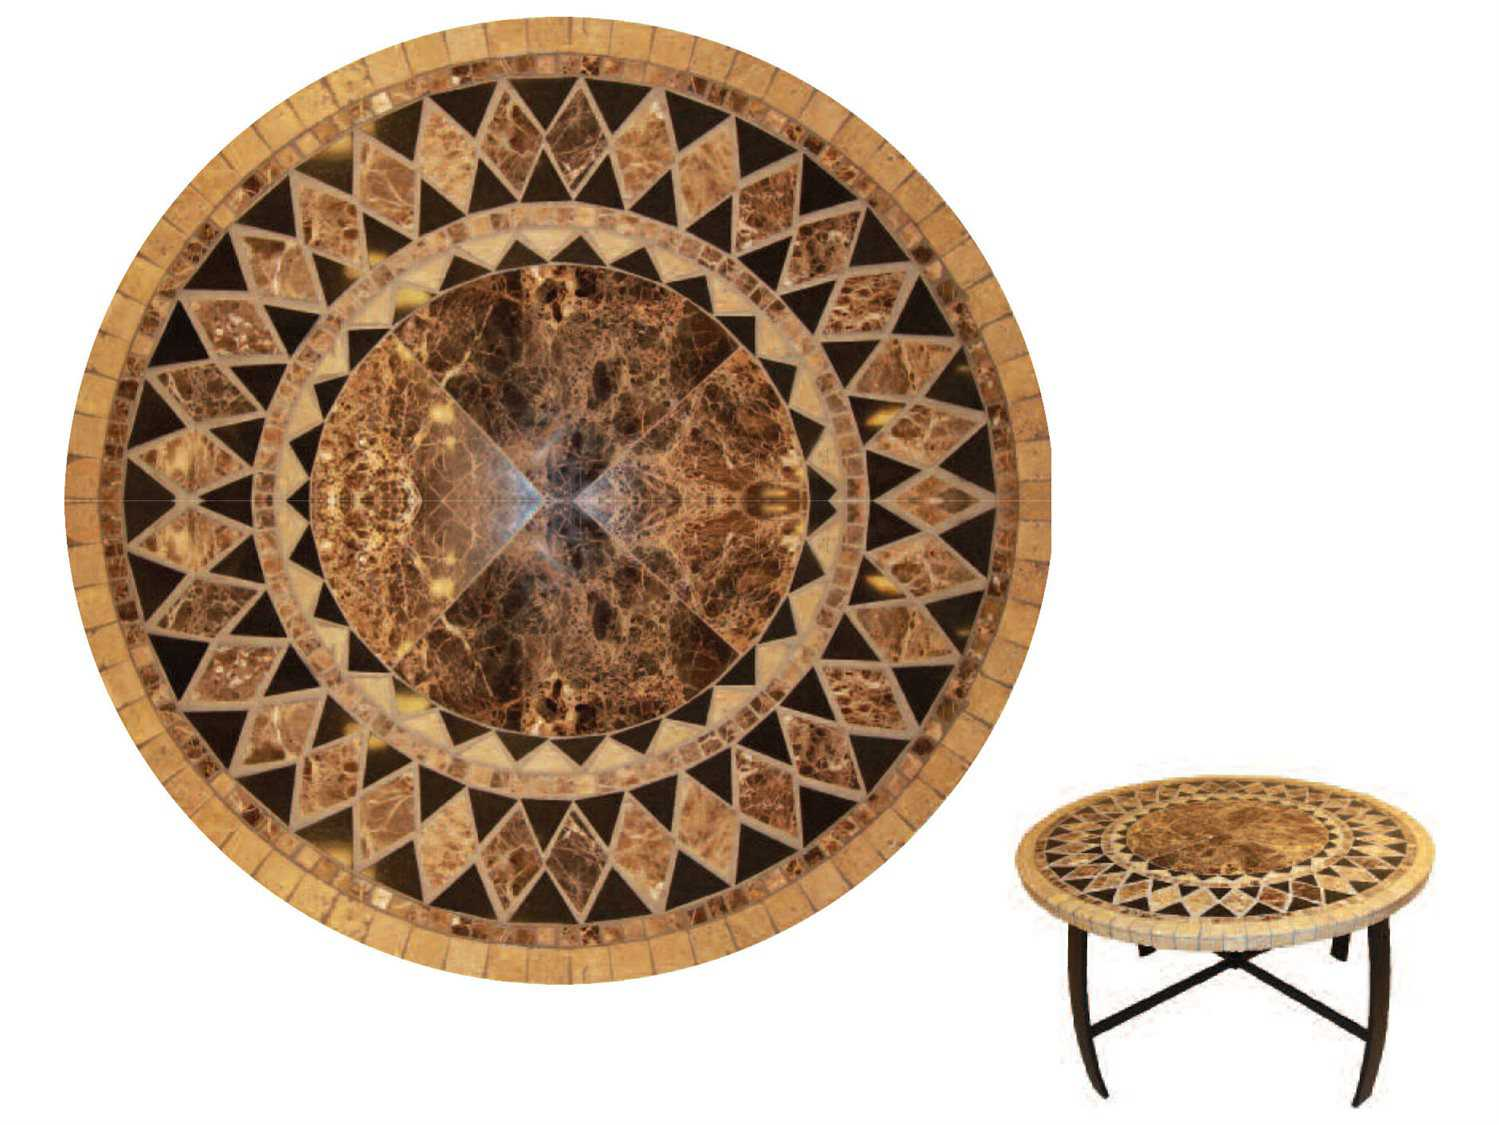 Suncoast Onyx Natural Stone 54 Round Dining Table Tops